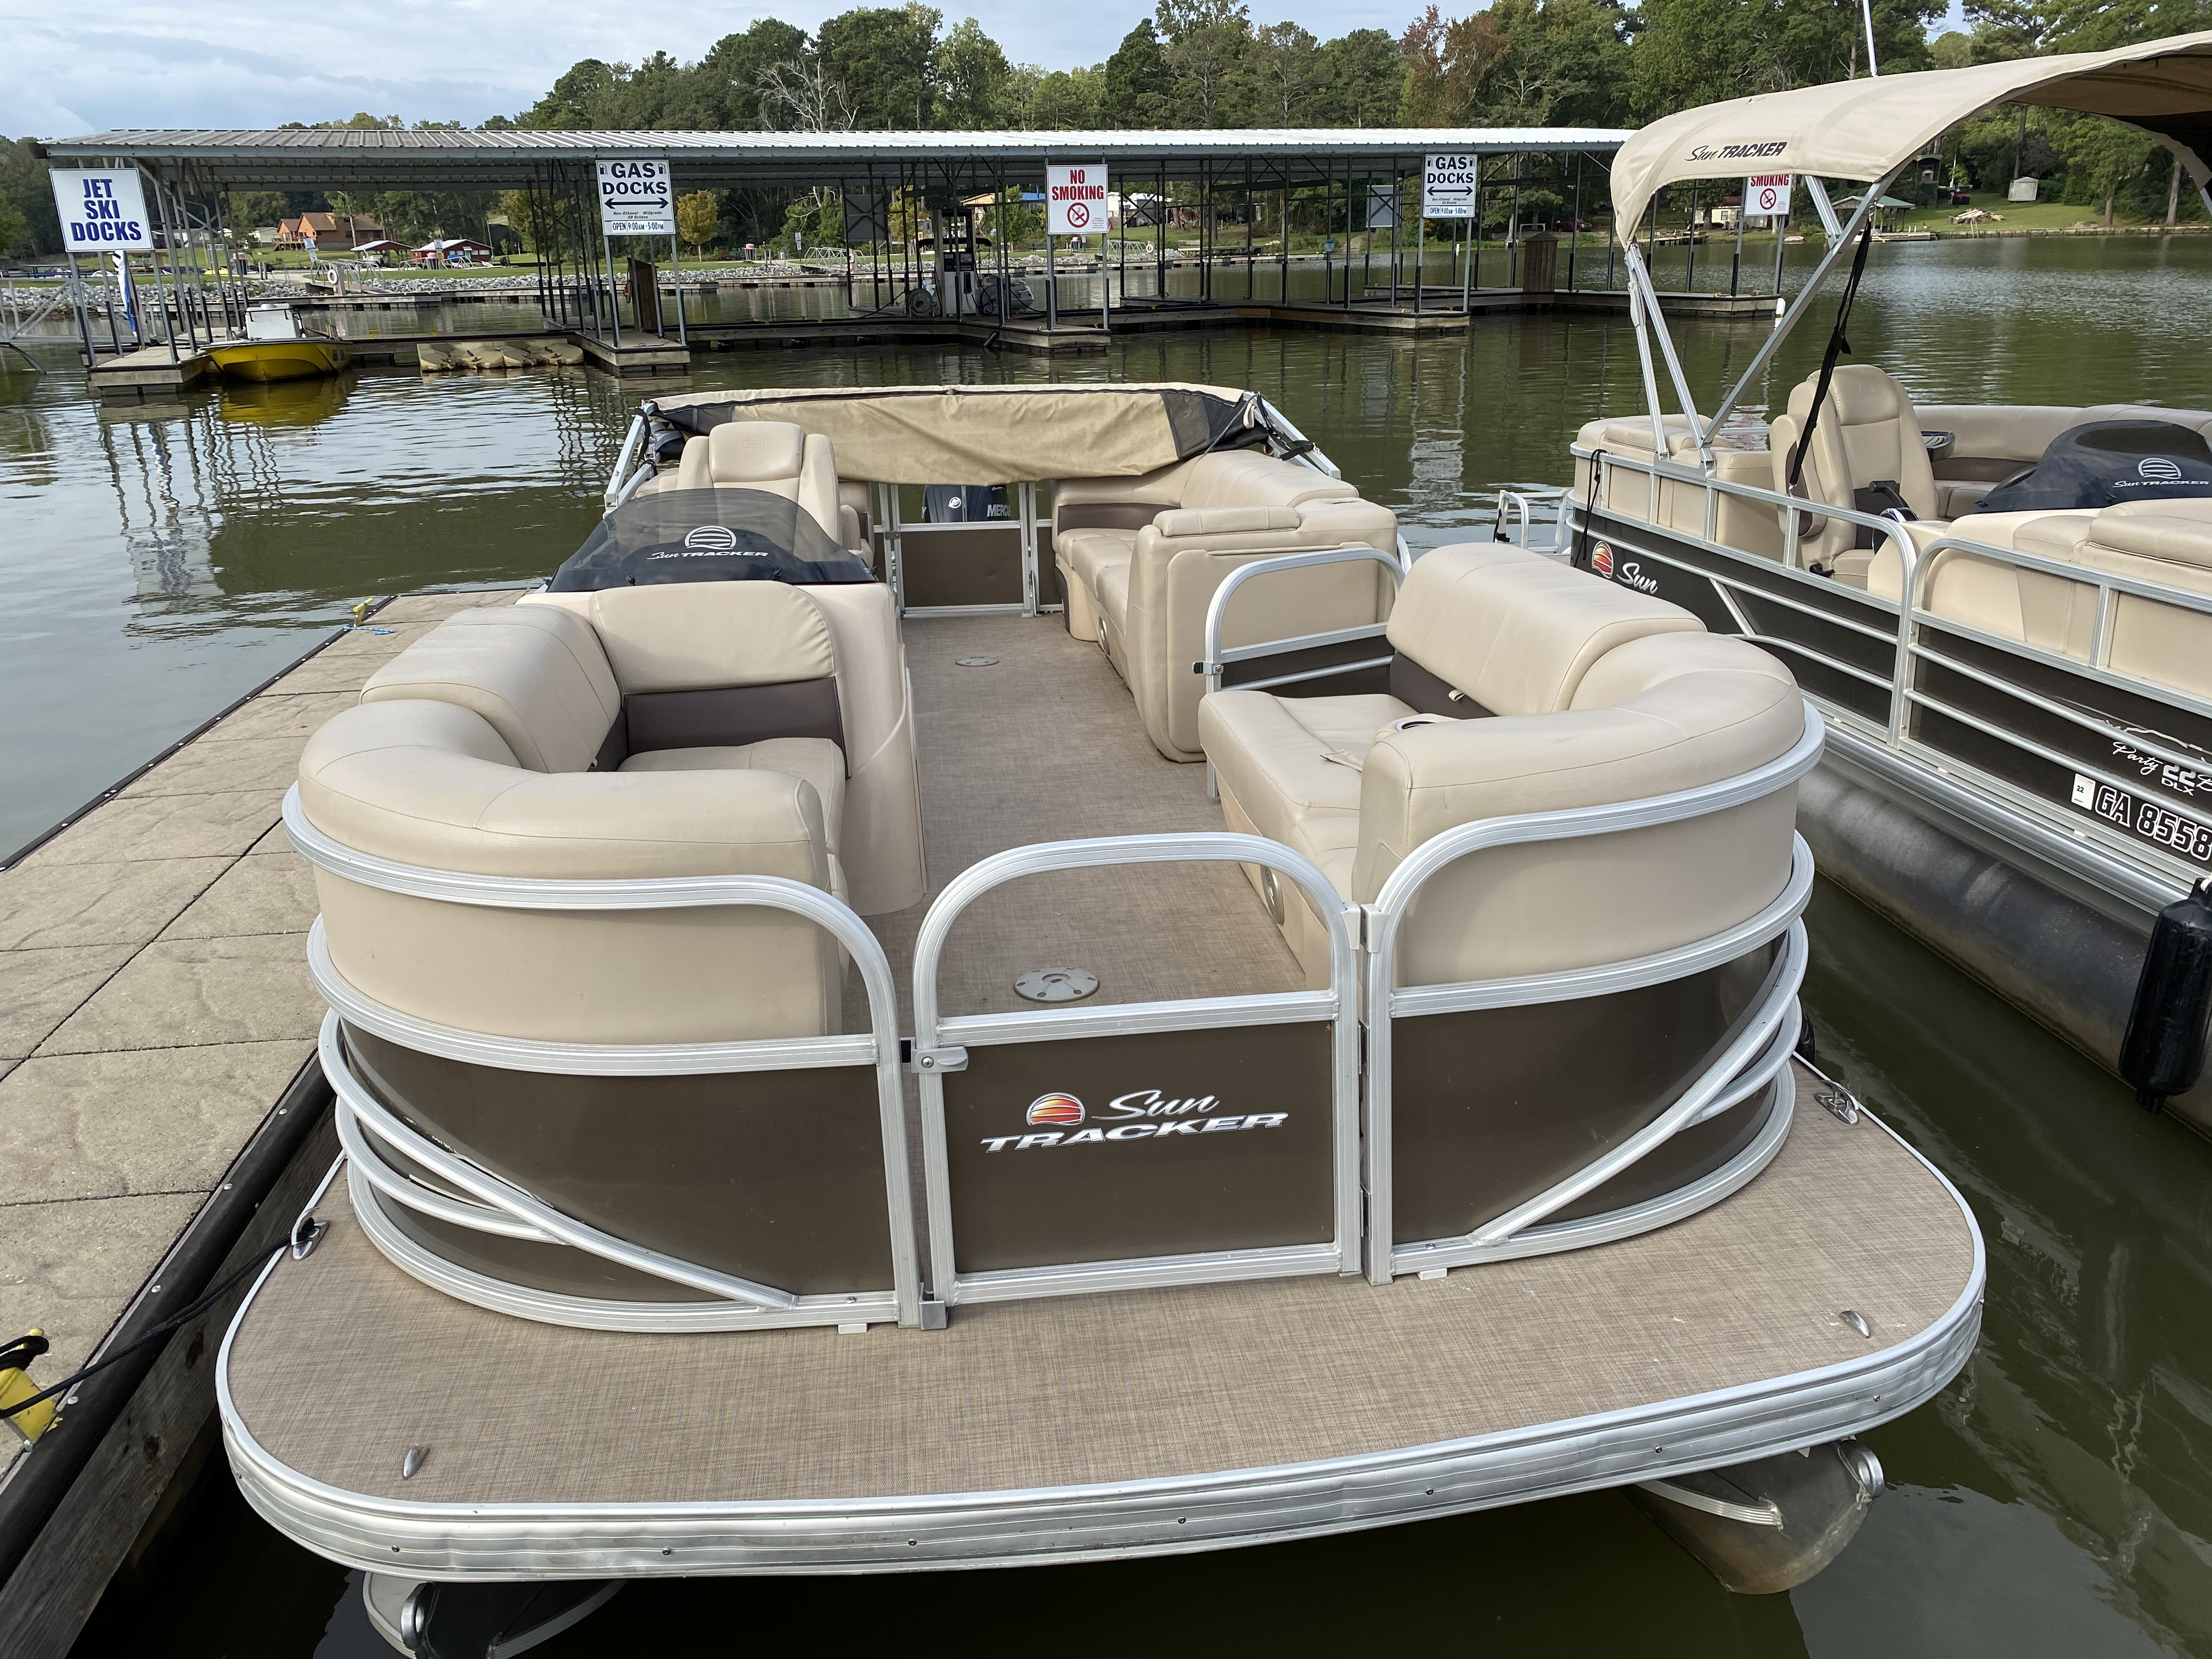 2019 Sun Tracker boat for sale, model of the boat is PARTY BARGE 22 w/ Mercury 115Hp 4S & Image # 1 of 22